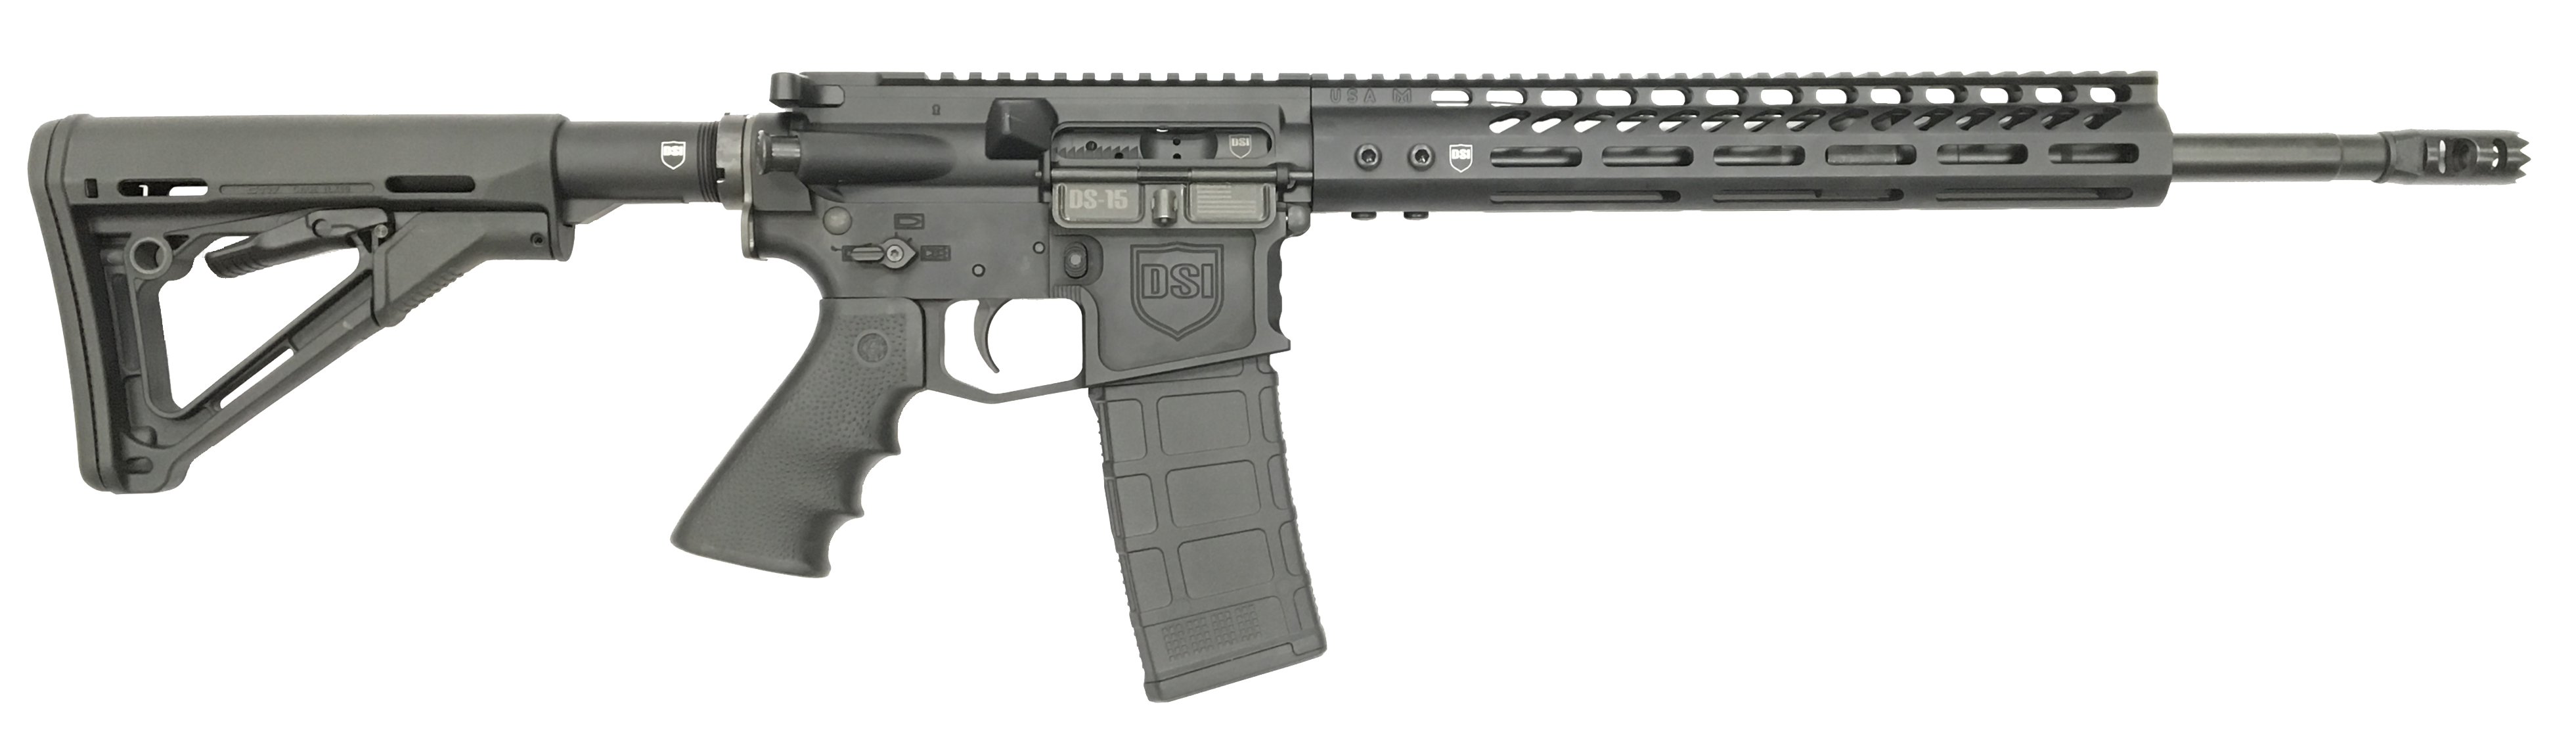 Dark Storm Industries (DSI) Rifles and Accessories Now Distributed by Camfour